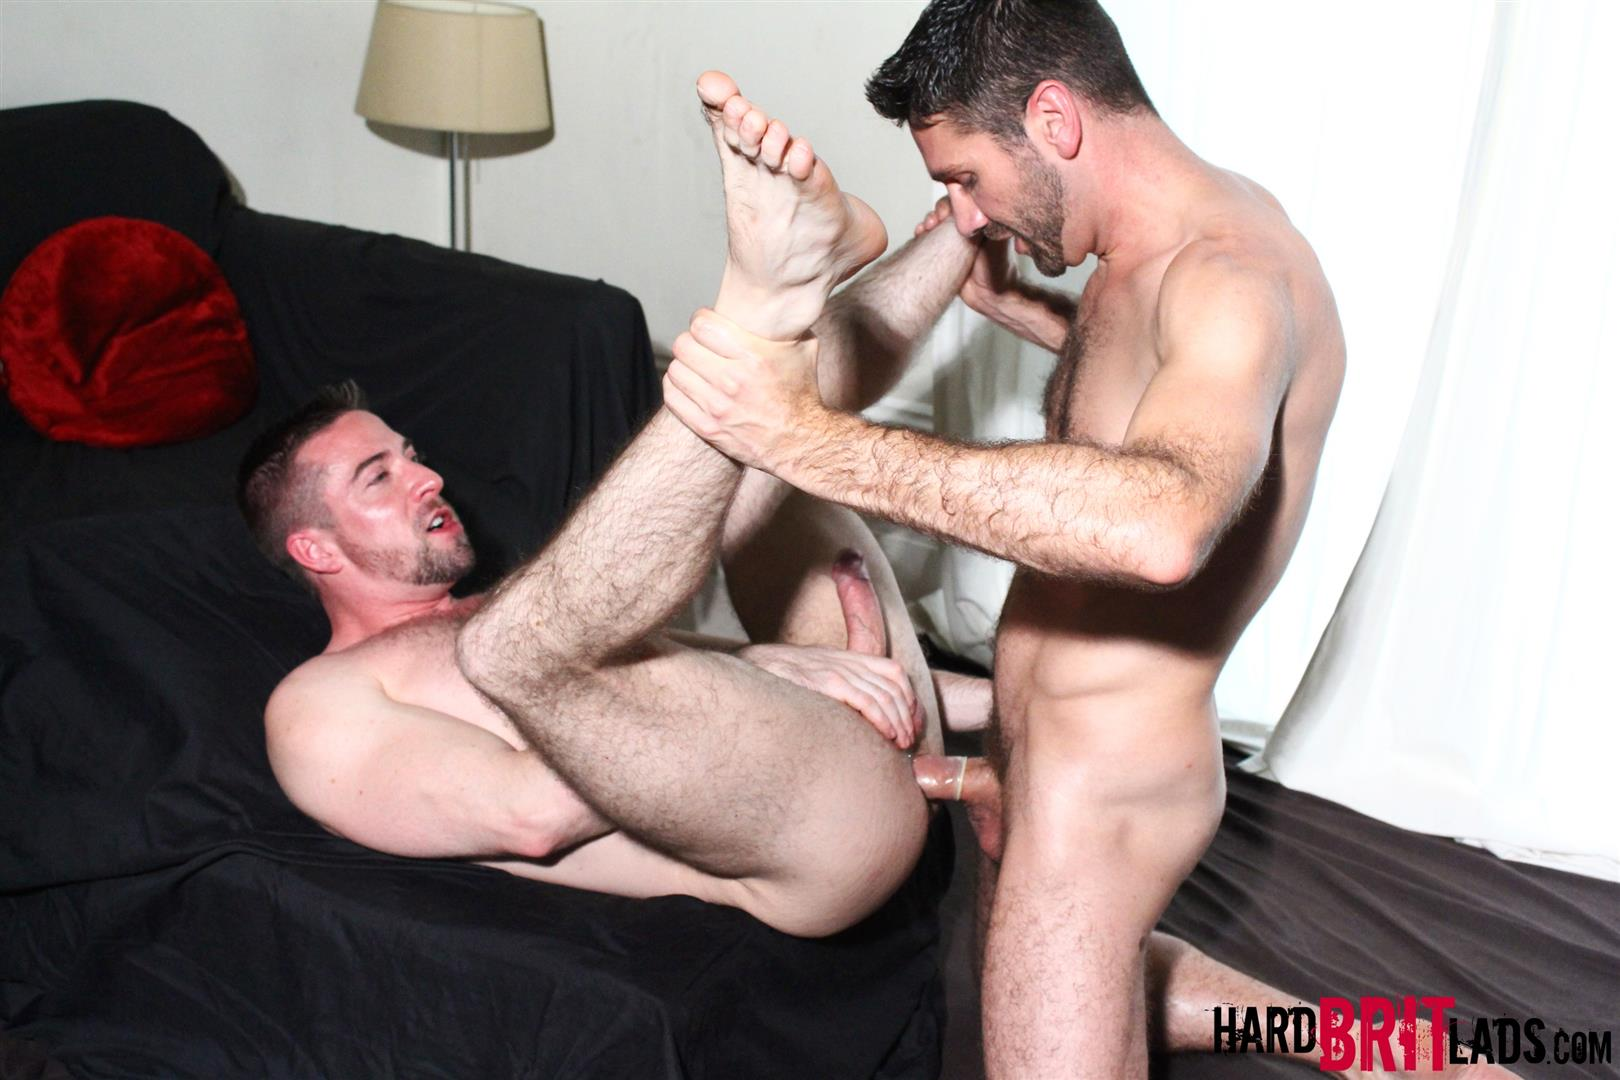 Hard-Brit-Lads-Craig-Daniel-Scott-Hunter-Hairy-Muscle-Hunks-With-Big-Uncut-Cocks-Fucking-Amateur-Gay-Porn-16 Hairy Muscle Hunks Fucking And Eating Cum From Big Uncut Cocks